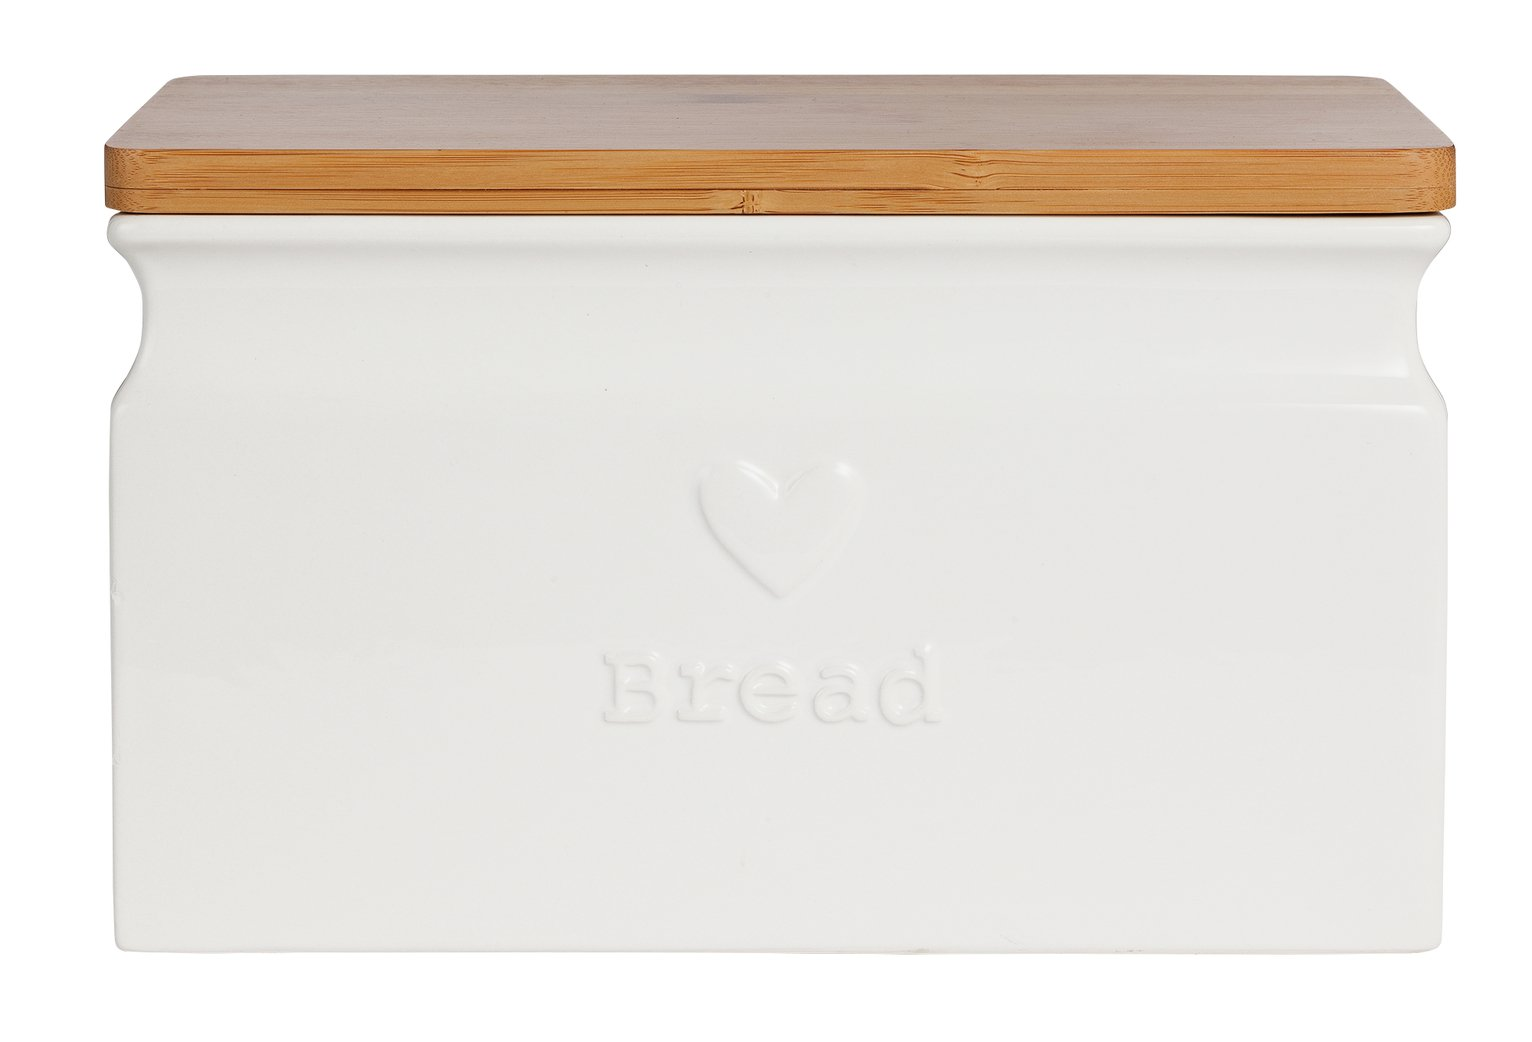 bread bins page 1 argos price tracker. Black Bedroom Furniture Sets. Home Design Ideas